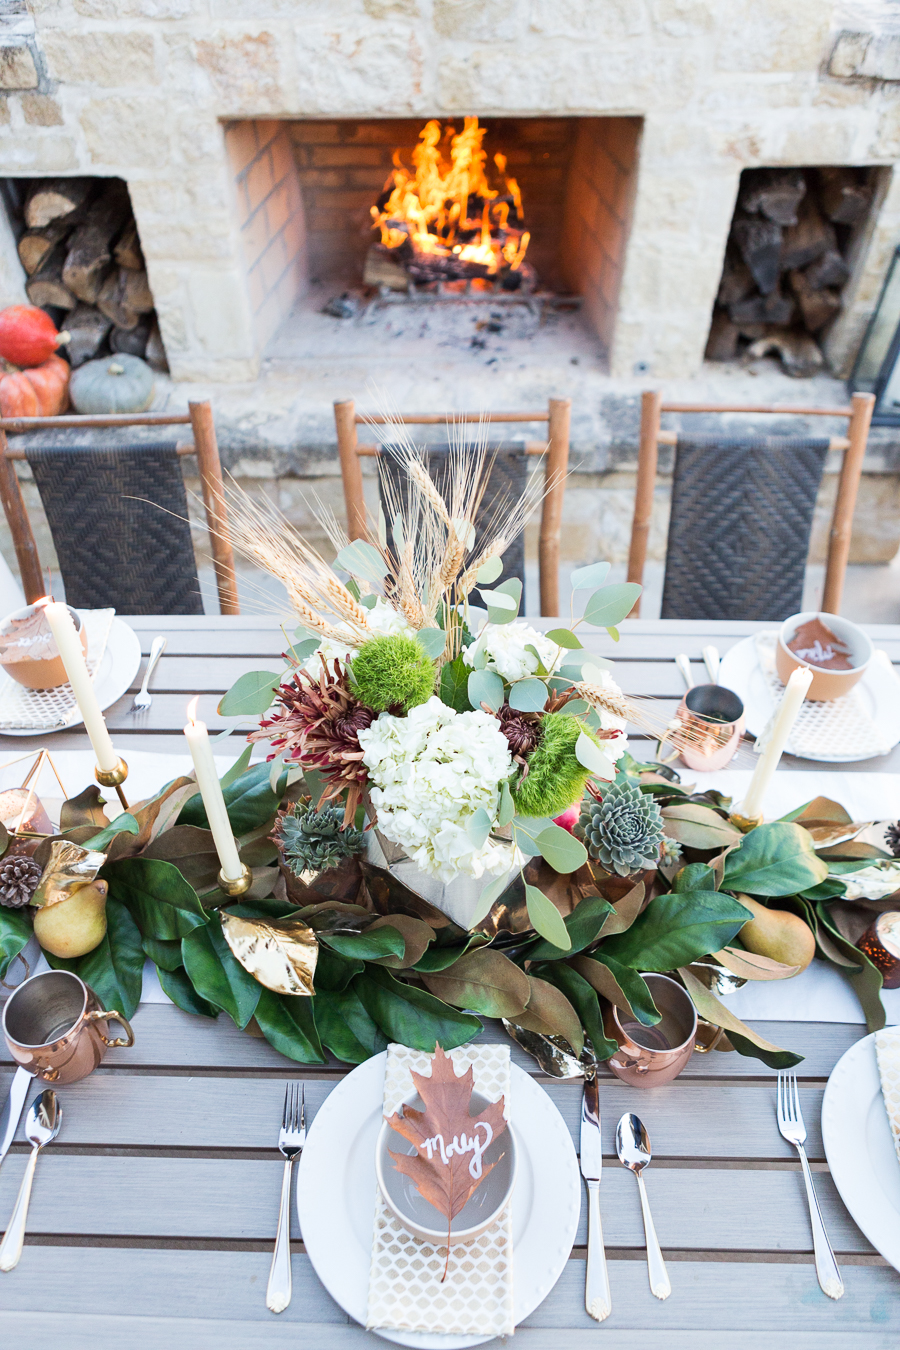 Simple Ways to Decorate for the Holidays from West Elm outdoor Friendsgiving and thanksgiving tablescape magnolia garland with gold candlesticks and a rock outdoor fireplace and copper votive candles